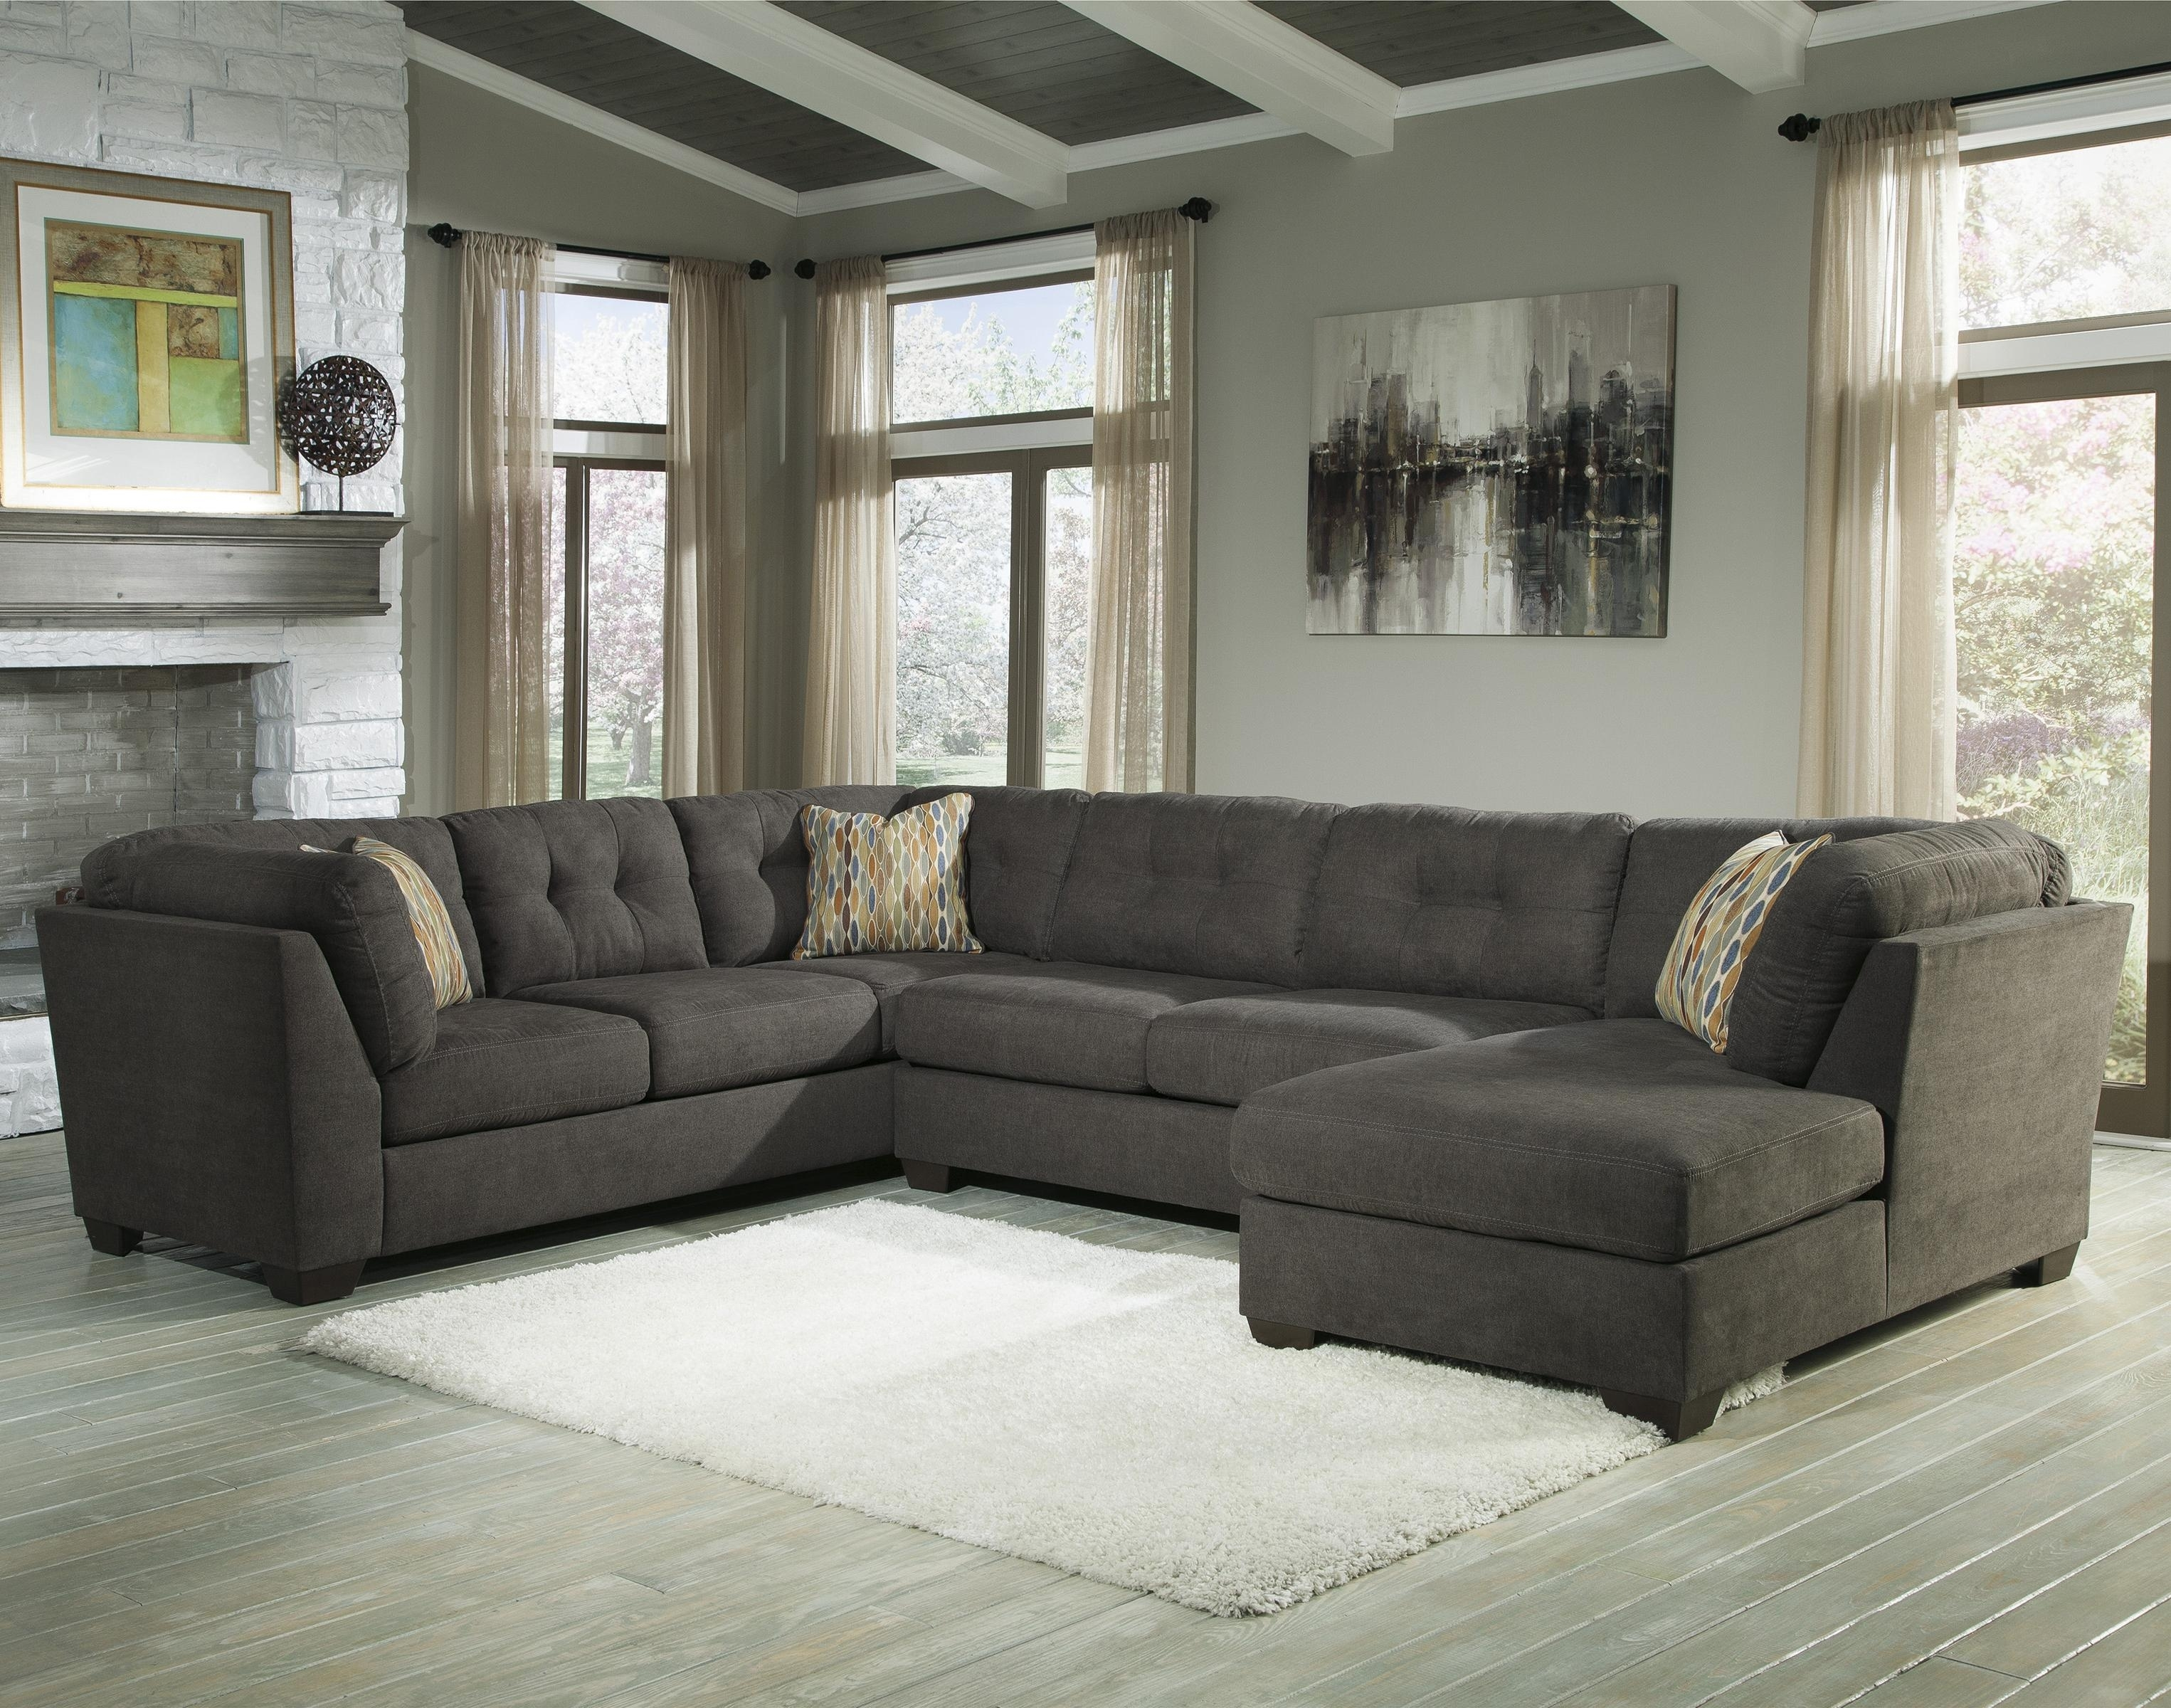 Awesome Gray Modular Sectional Sofa 97 In Jcpenney Sectional Sofa Intended For Jcpenney Sectional Sofas (View 7 of 10)